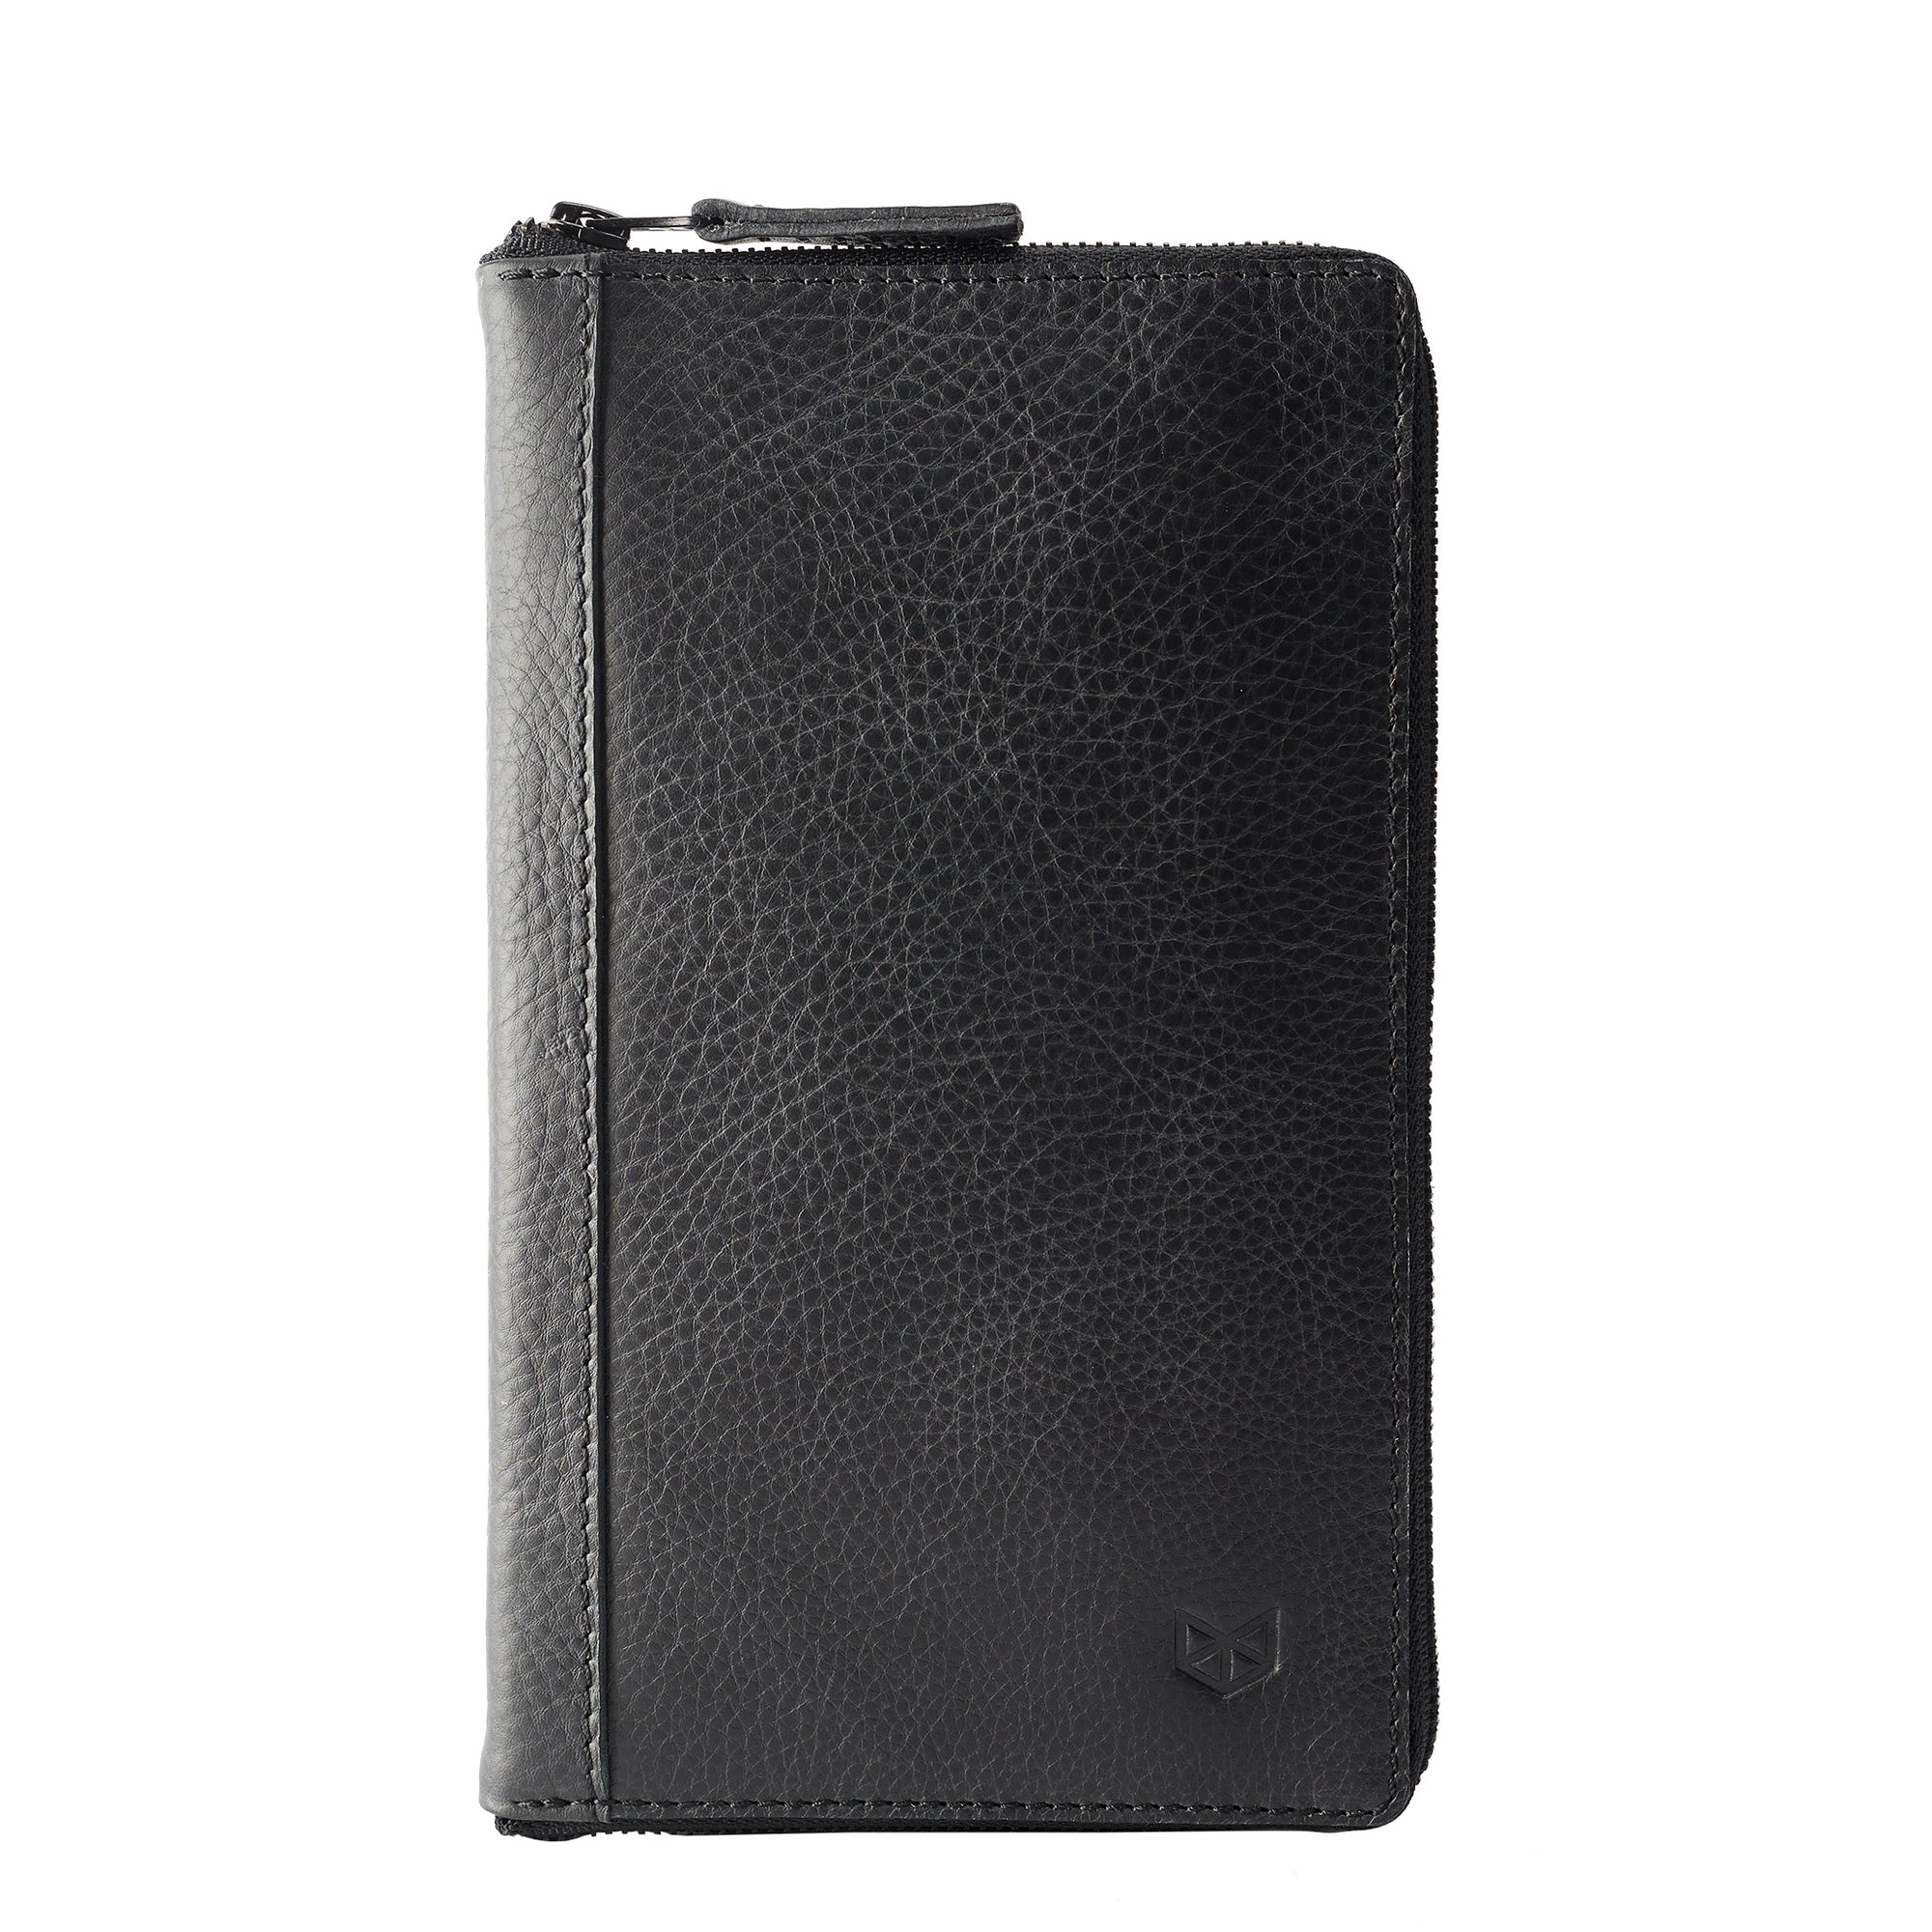 Front black leather passport wallet. Perfect for travelers. Gift for men by Capra Leather.